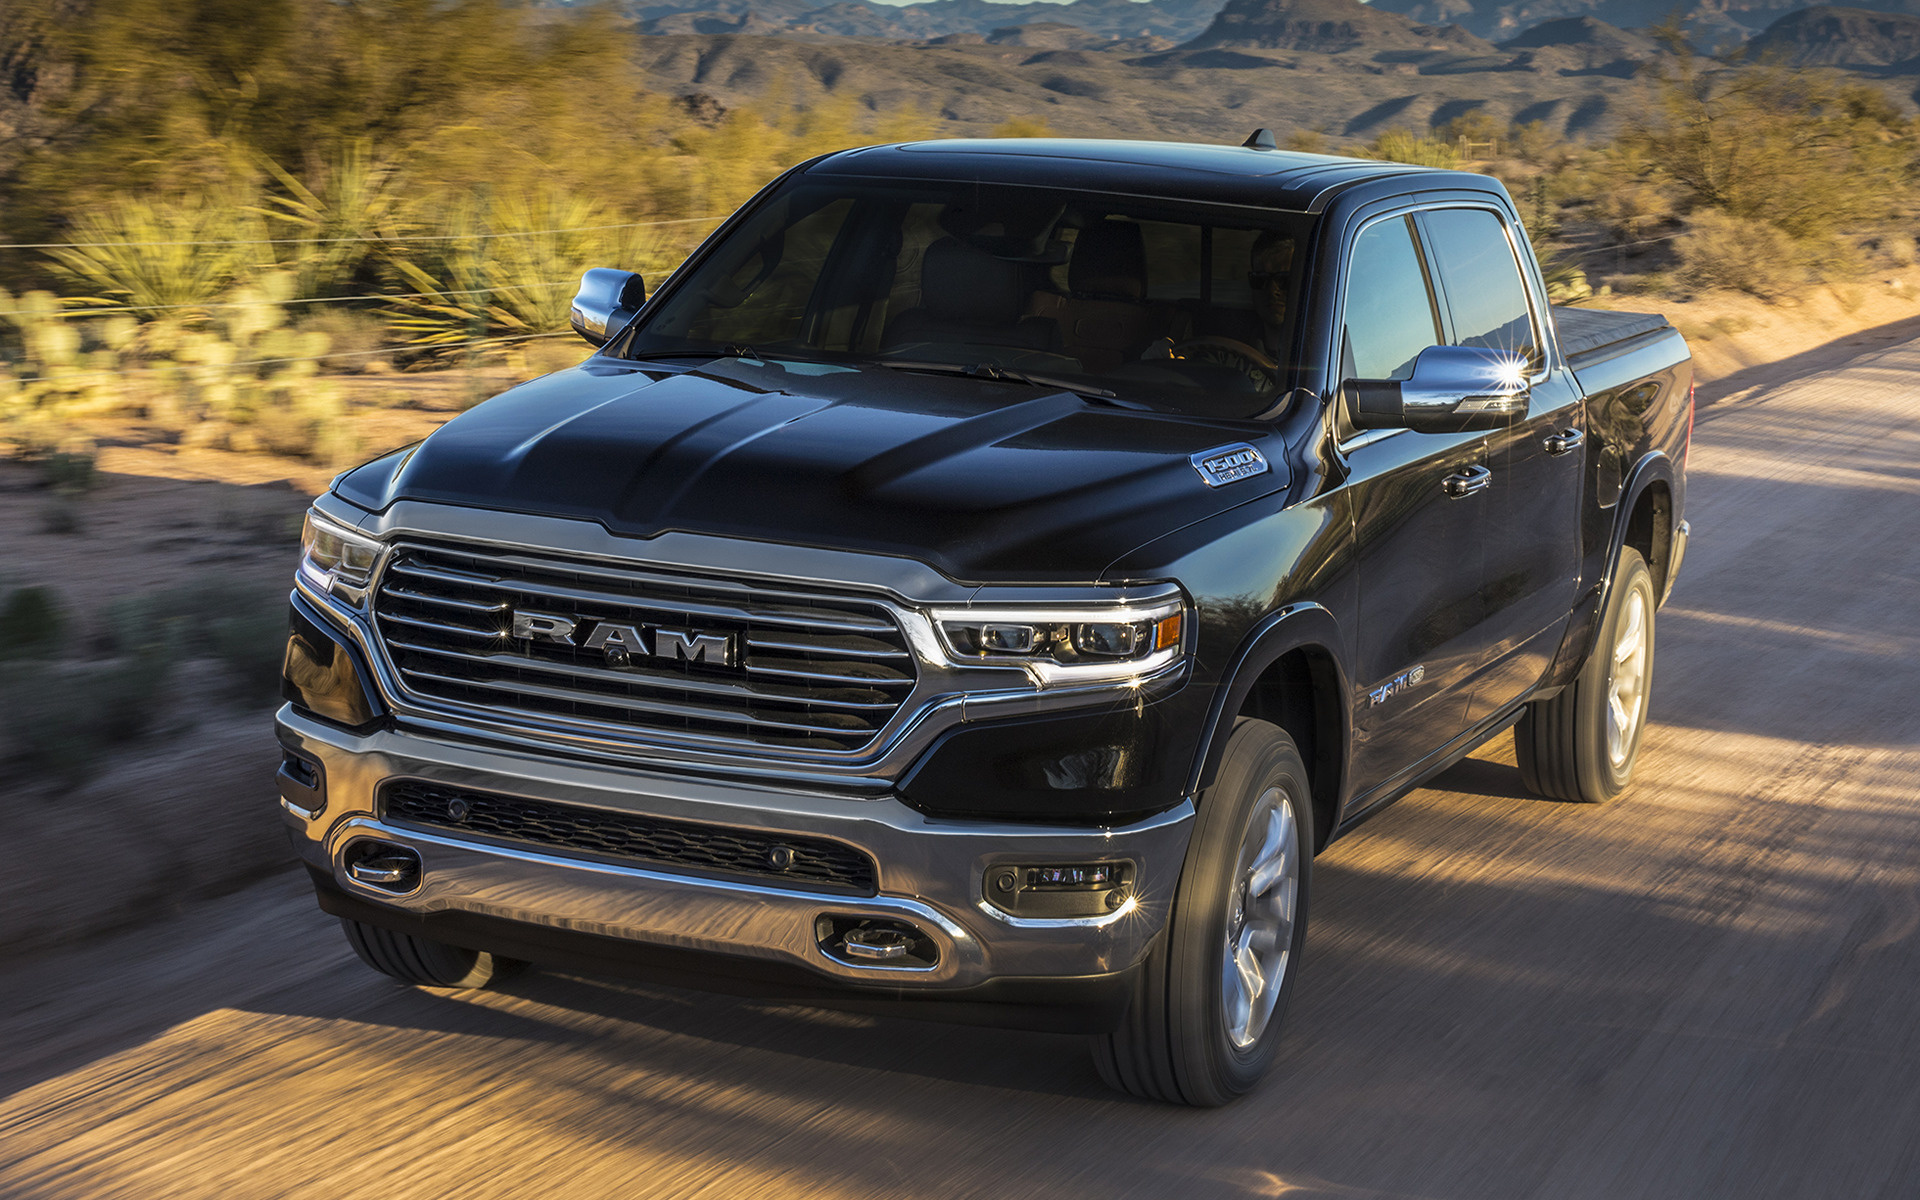 2019 Ram 1500 Laramie Longhorn Crew Cab Off Road Package